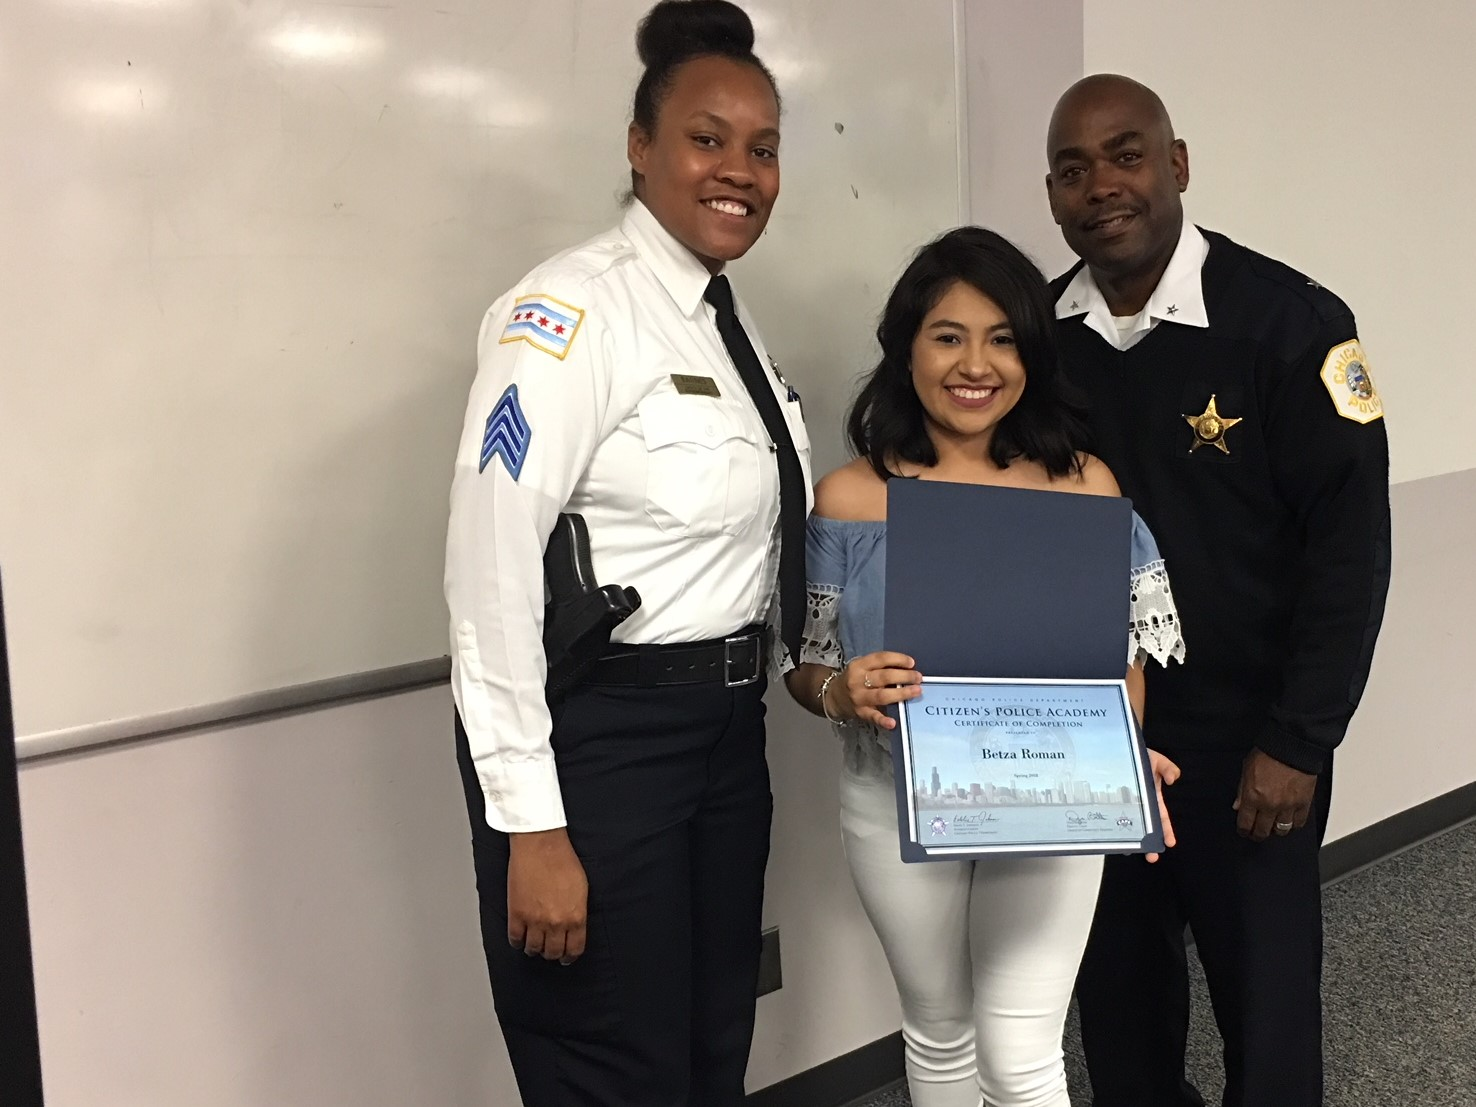 CMSA Students First To Graduate from Citizen's Police Academy